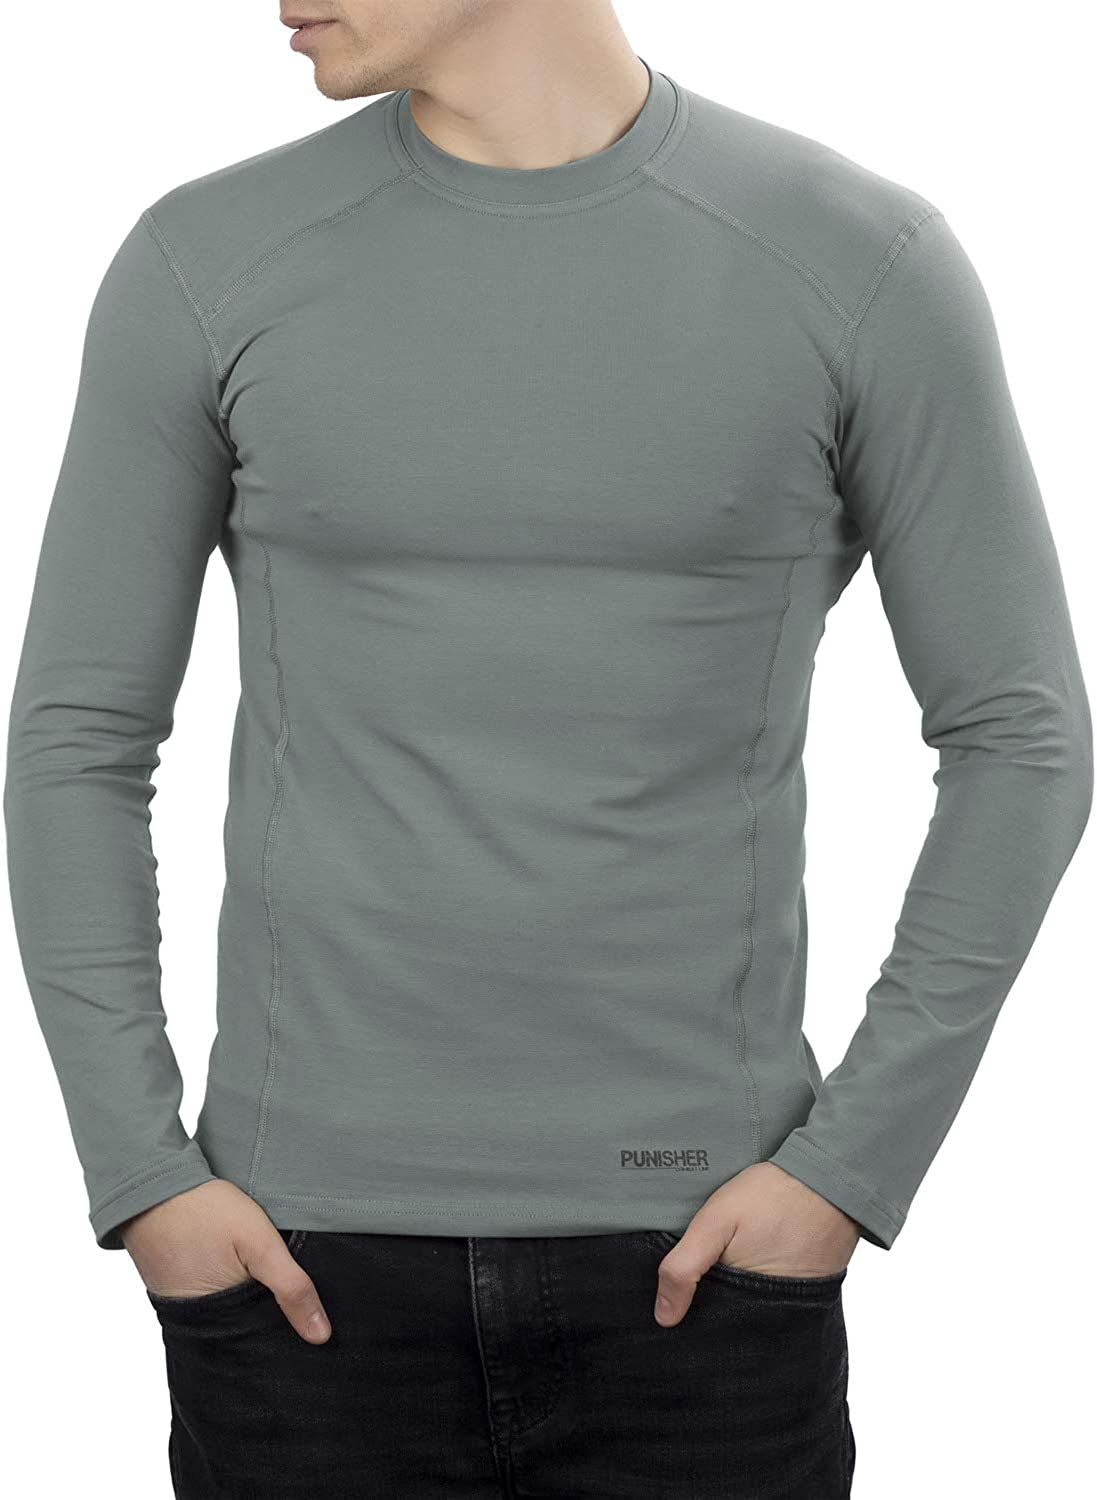 281Z Mens Military Stretch Cotton Long Sleeve T-Shirt - Tactical Hiking Outdoor Undershirt - Punisher Combat Line